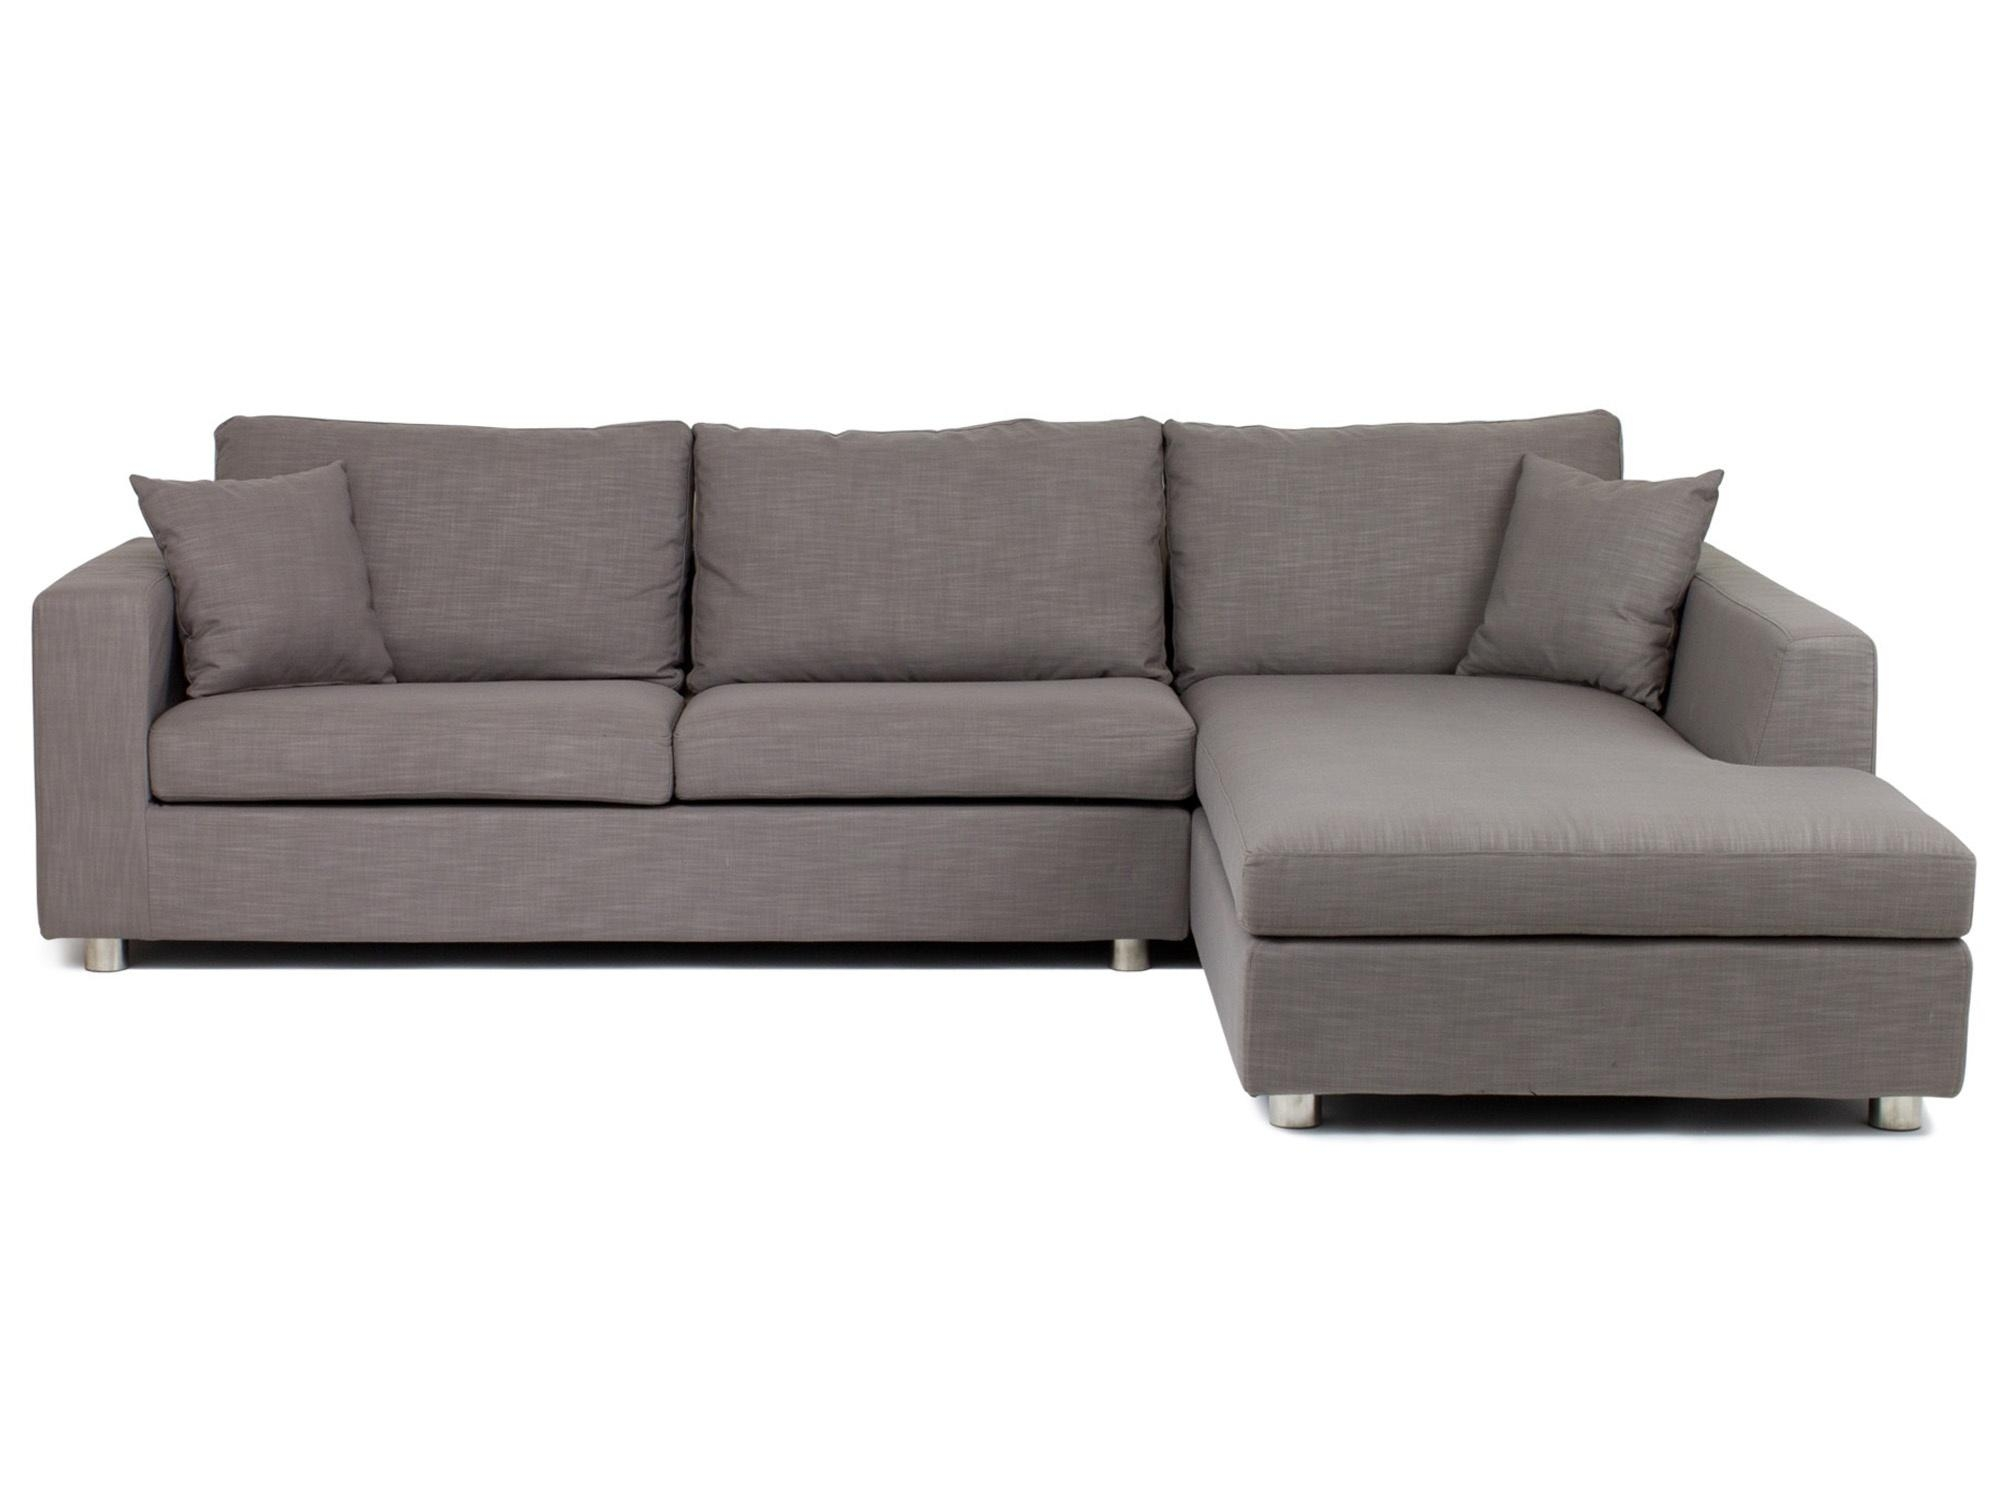 Sofas Center : Ikea Corner Sofa With Storage L Shape Storagedfs Pertaining To Ikea Corner Sofa Bed With Storage (Image 19 of 20)